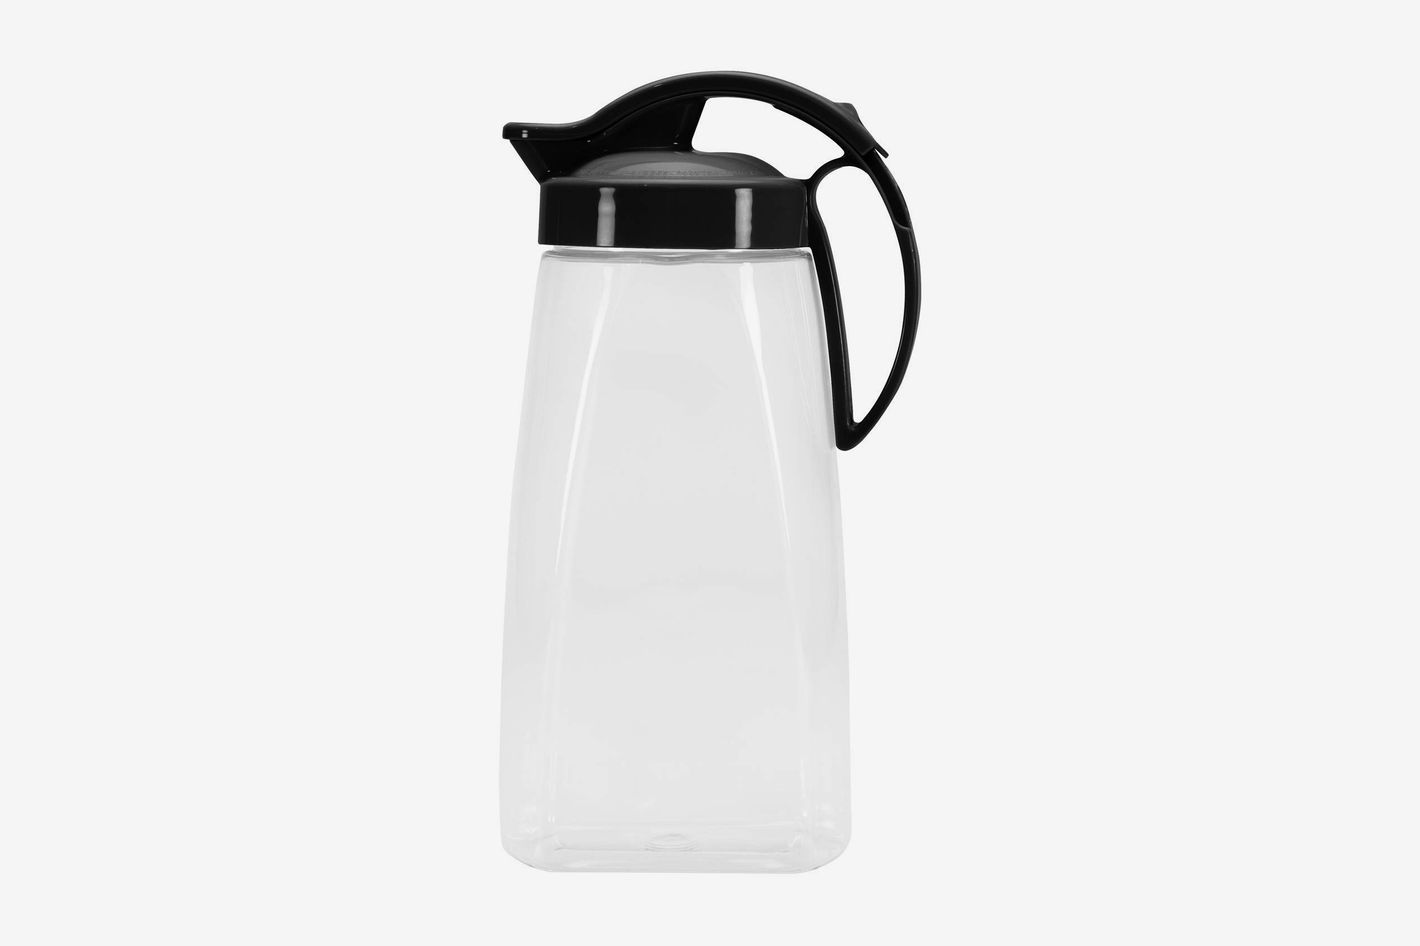 QuickPour Airtight Pitcher With Locking Spout